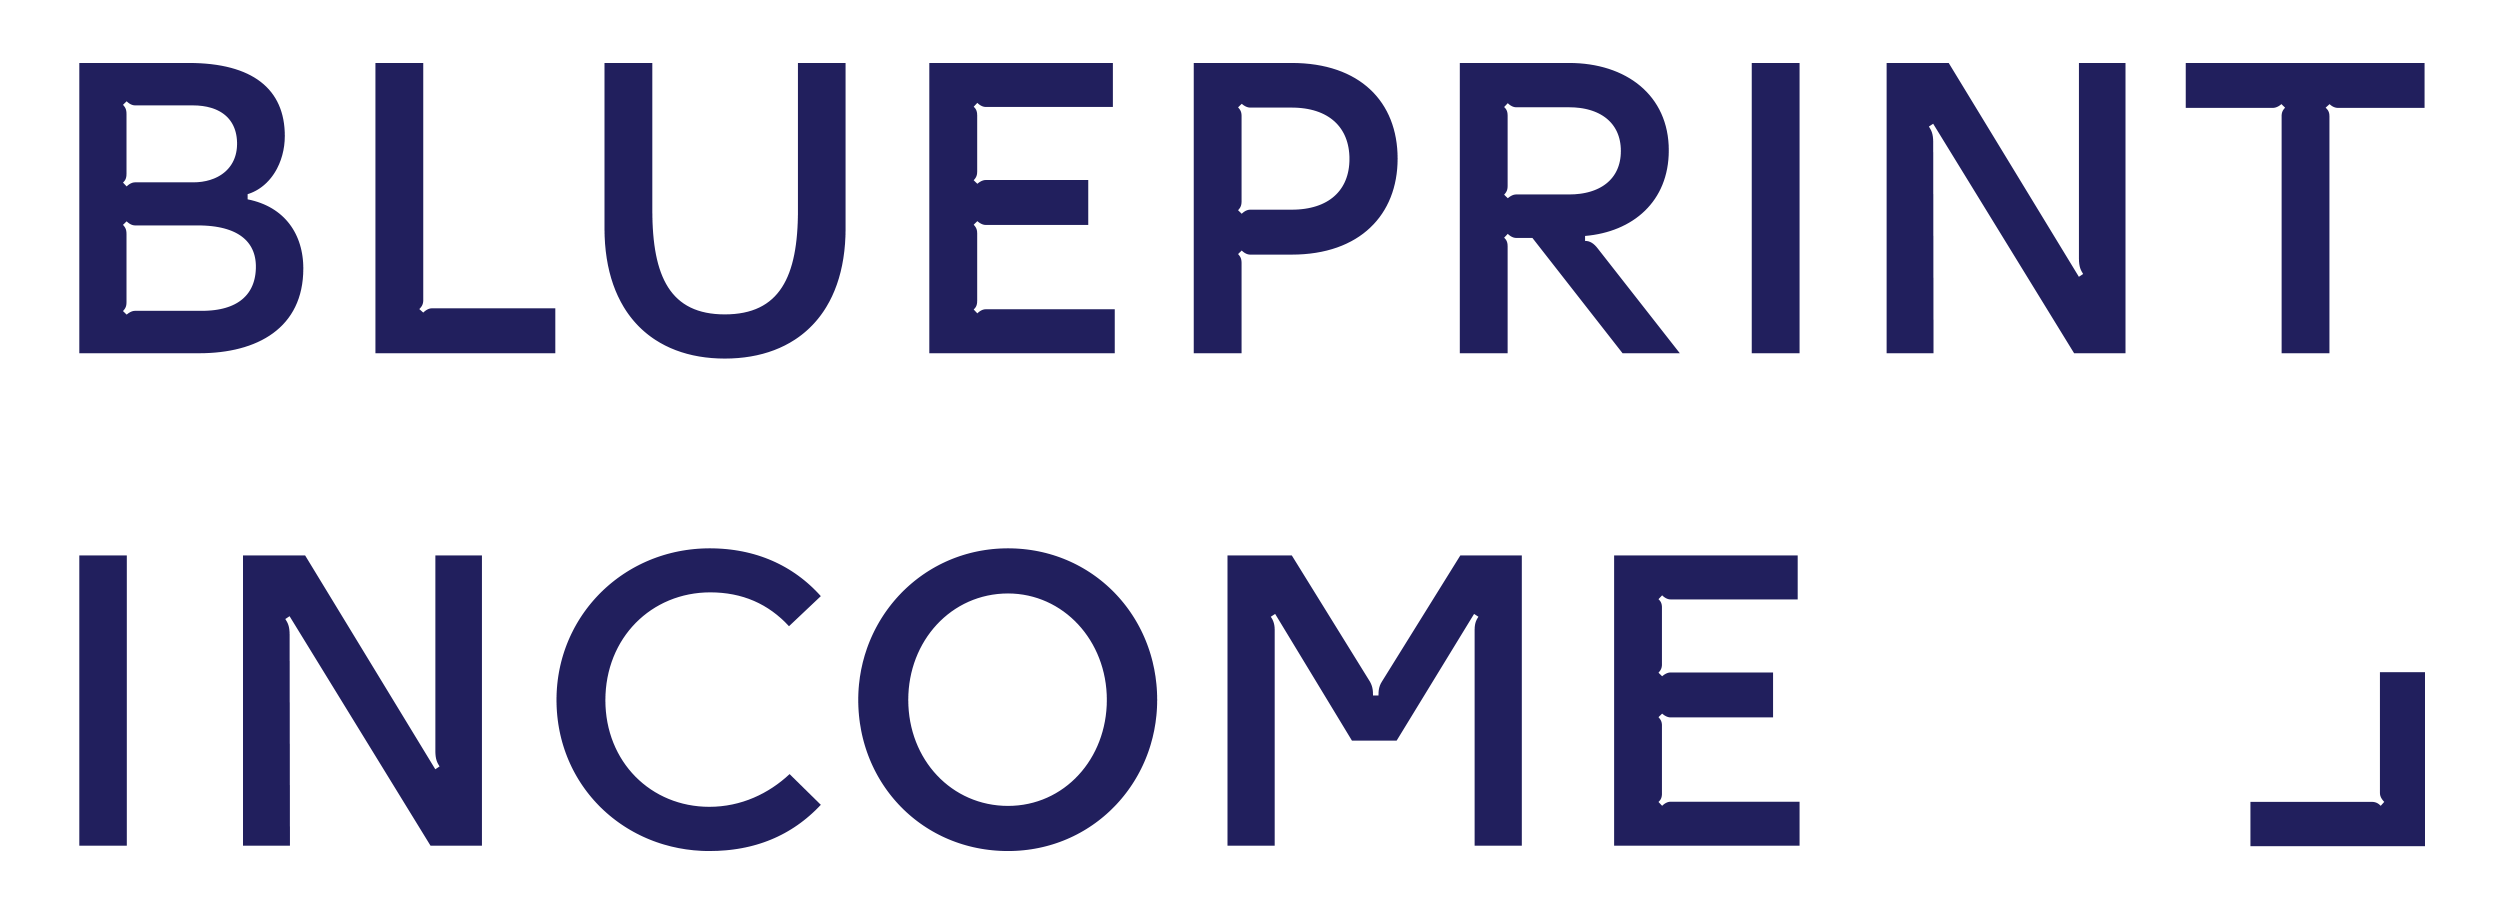 Although work-sponsored pensions are mostly a thing of the past, Blueprint Income is a financial services company that offers guaranteed retirement income through Personal Pension plans. In this Blueprint Income review, we'll explore how it works, the pros and cons, and whether they are a good fit for you.